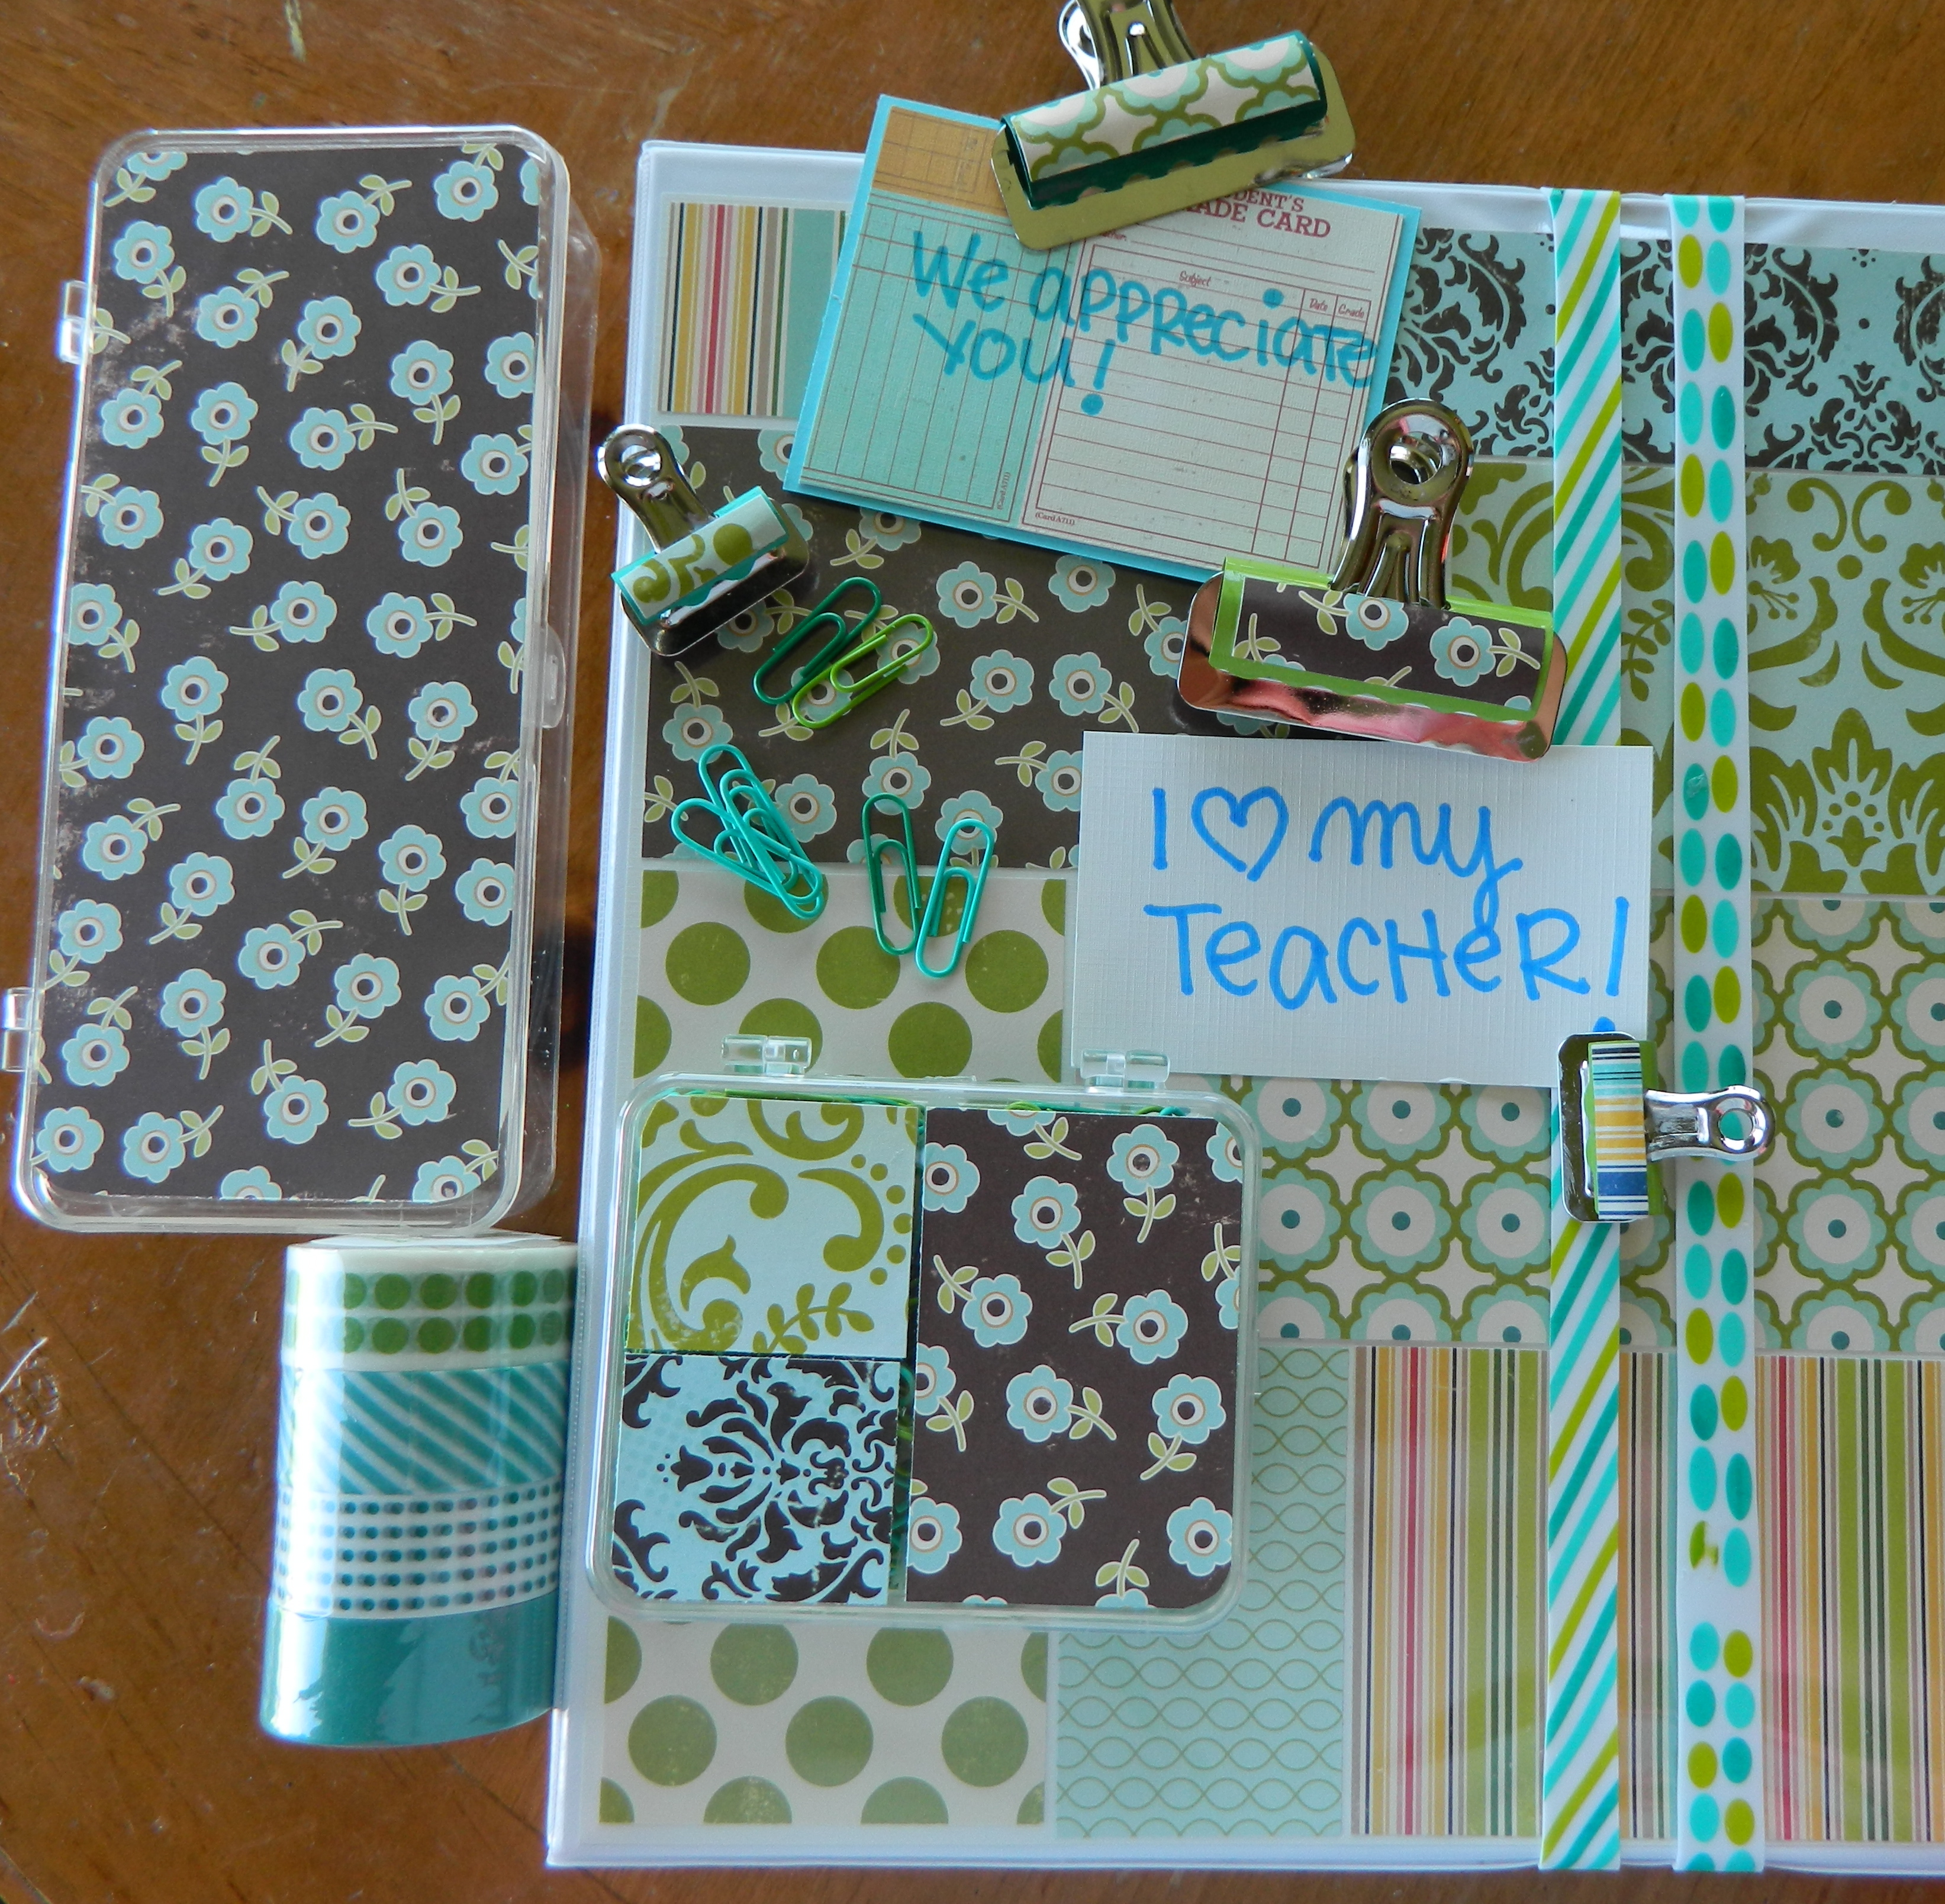 & Embellished School Supplies | Fun Family Crafts